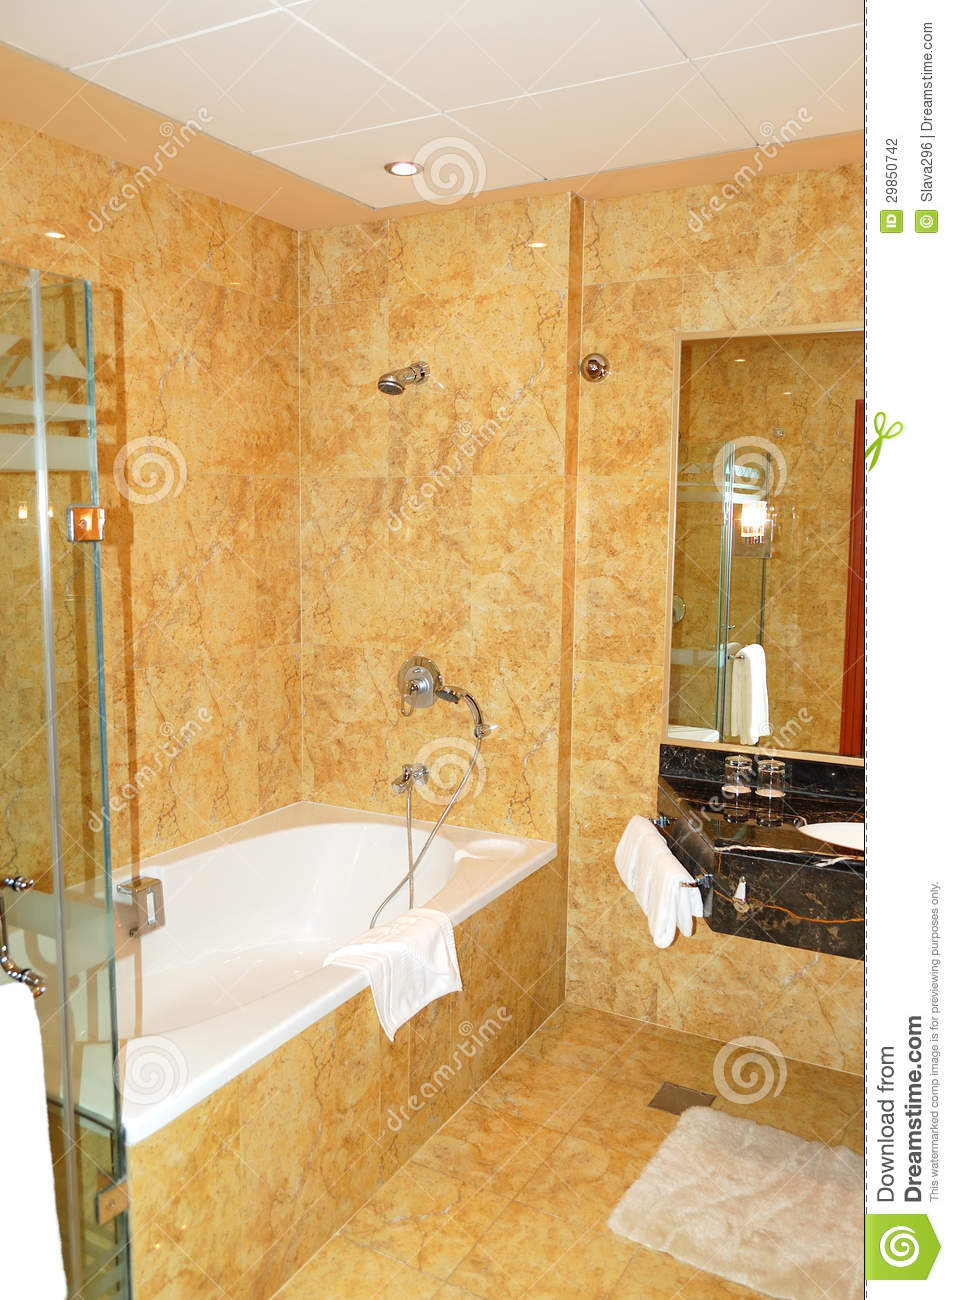 Bathroom in the luxurious hotel stock photography image for Bathroom design uae